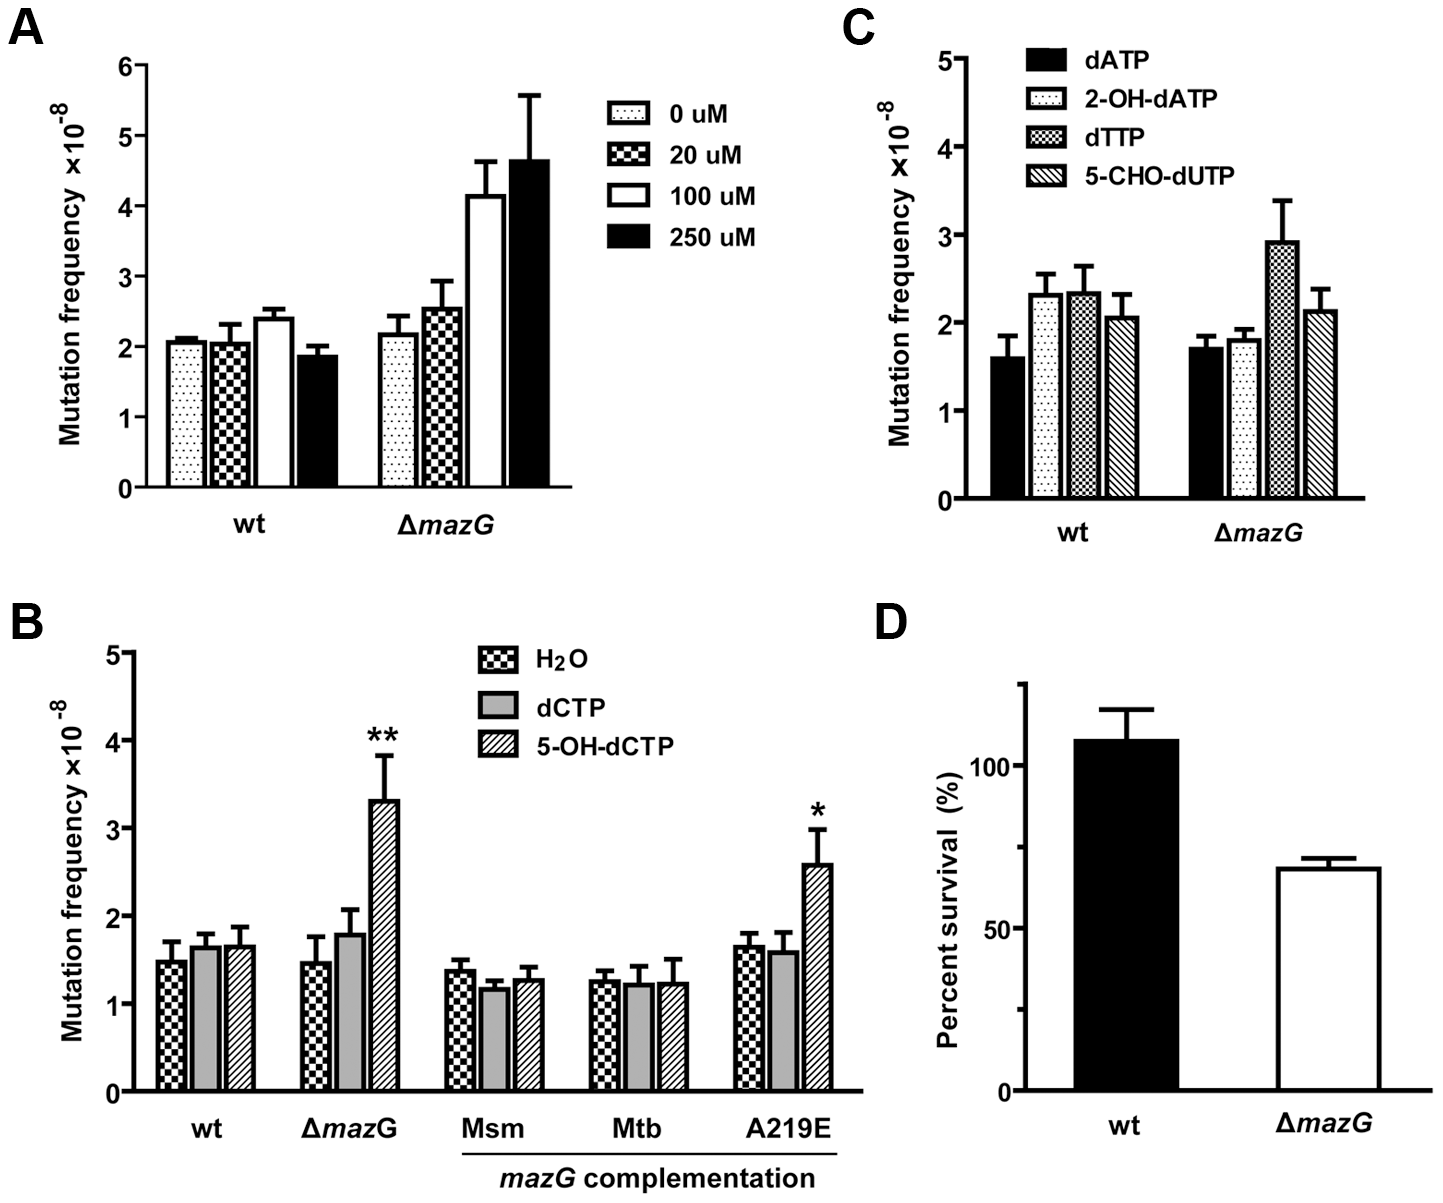 5-OH-dCTP is an <i>in vivo</i> substrate of mycobacterial MazG proved by chemical genetic analysis.